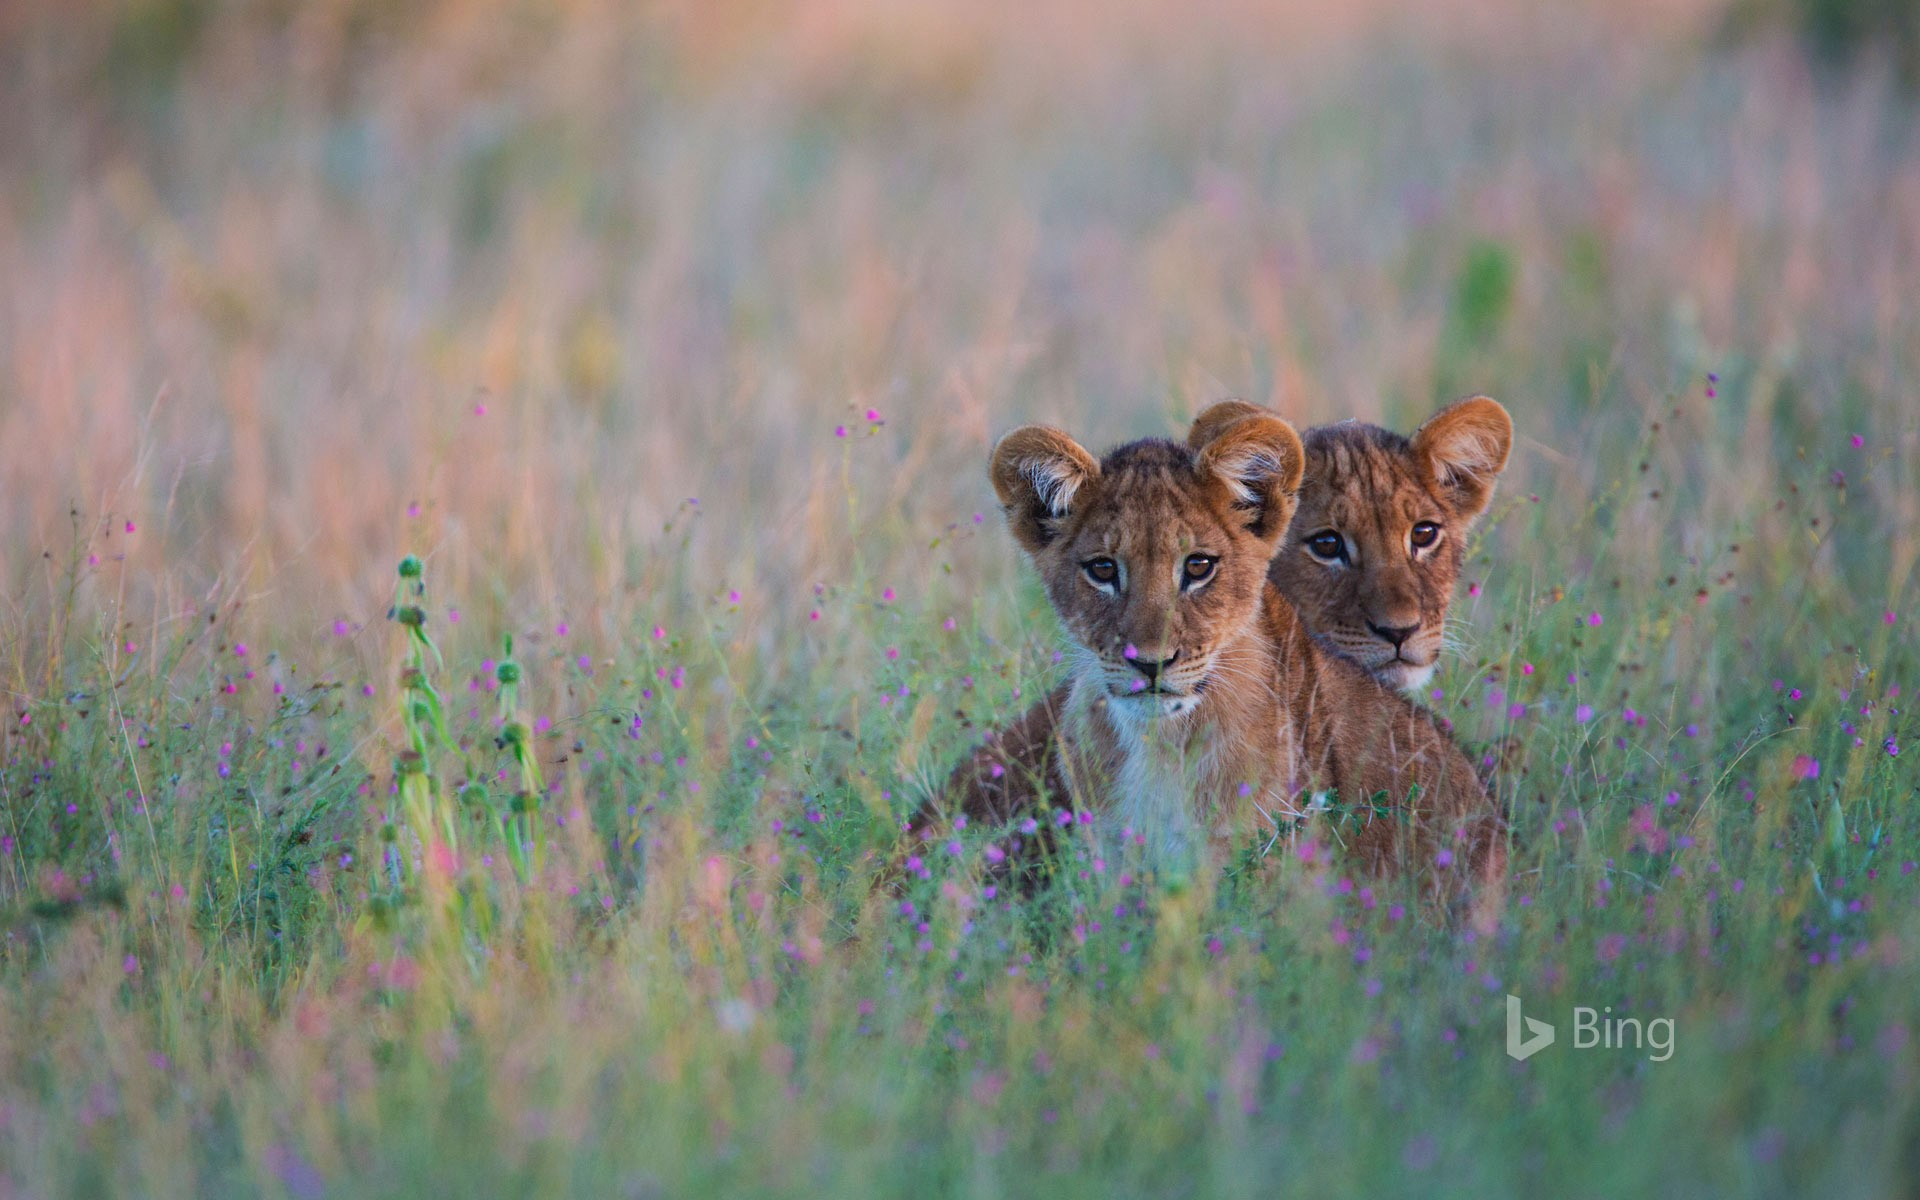 Lion cubs hiding in tall grass in the Kalahari Desert of Botswana